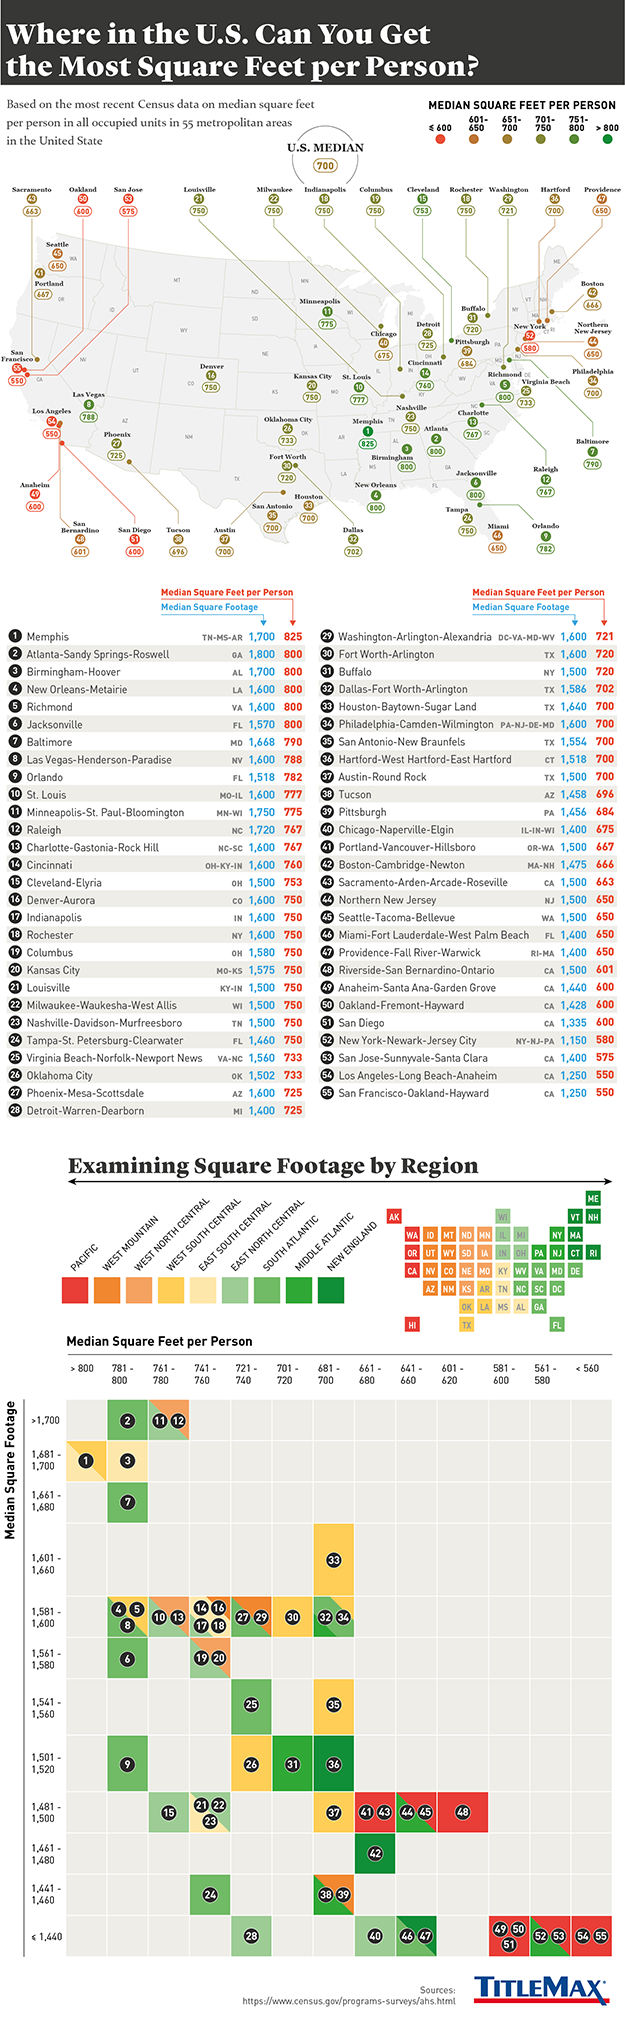 Infographic for Where in the U.S. Can You Get the Most Square Feet Per Person?